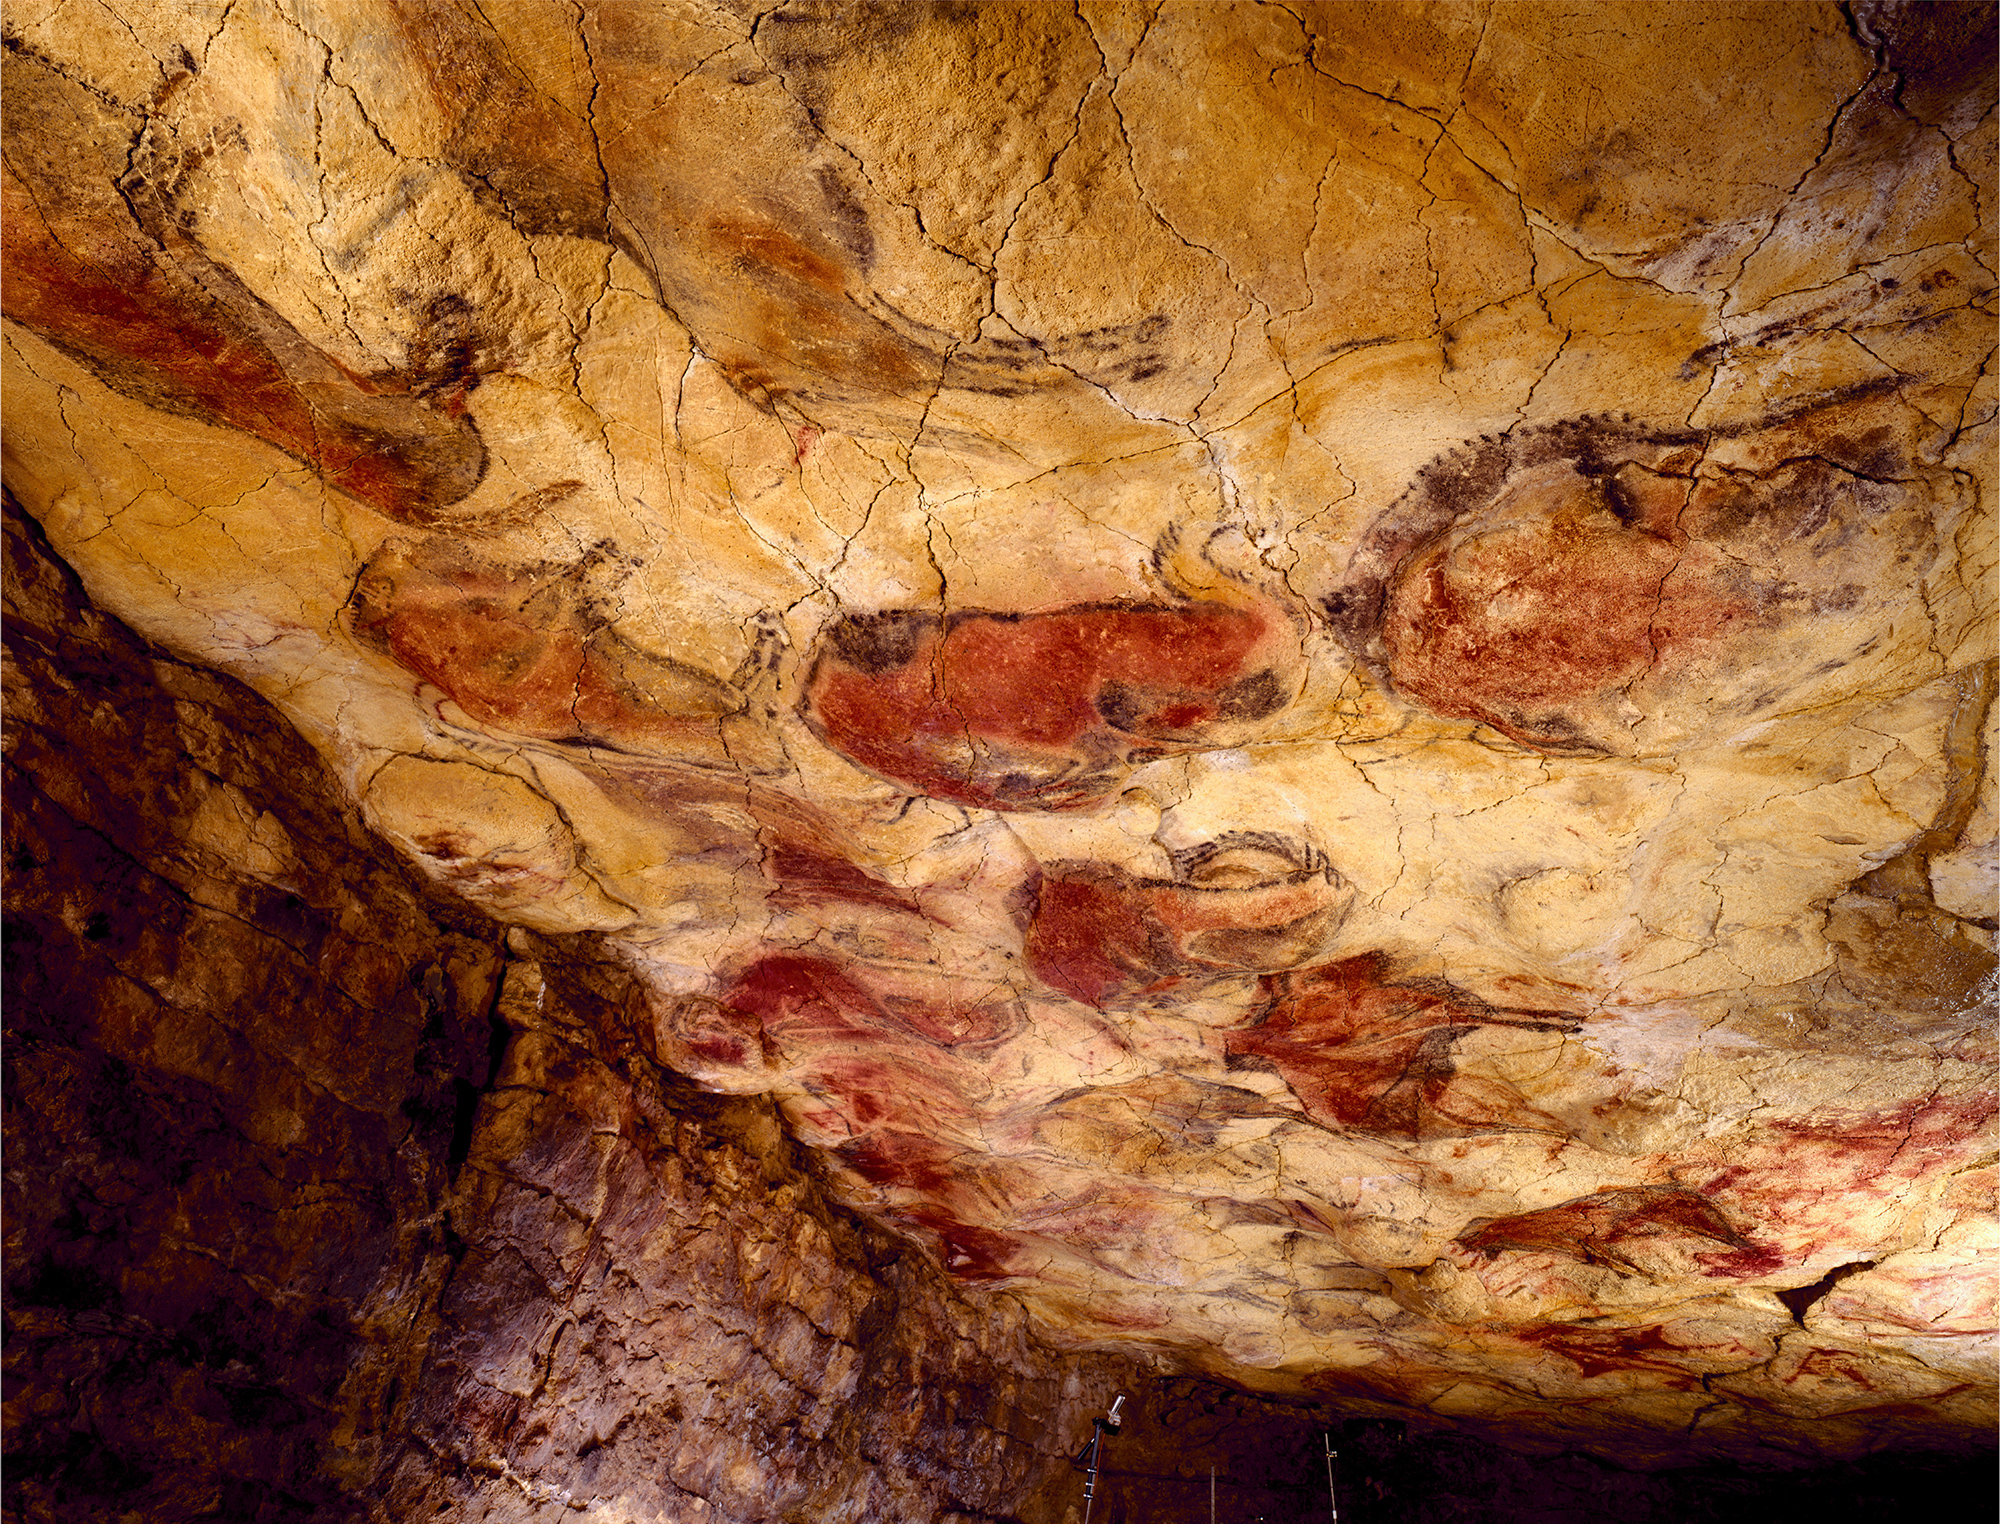 Polychrome ceiling Altamira Cave Art Paintings Spain